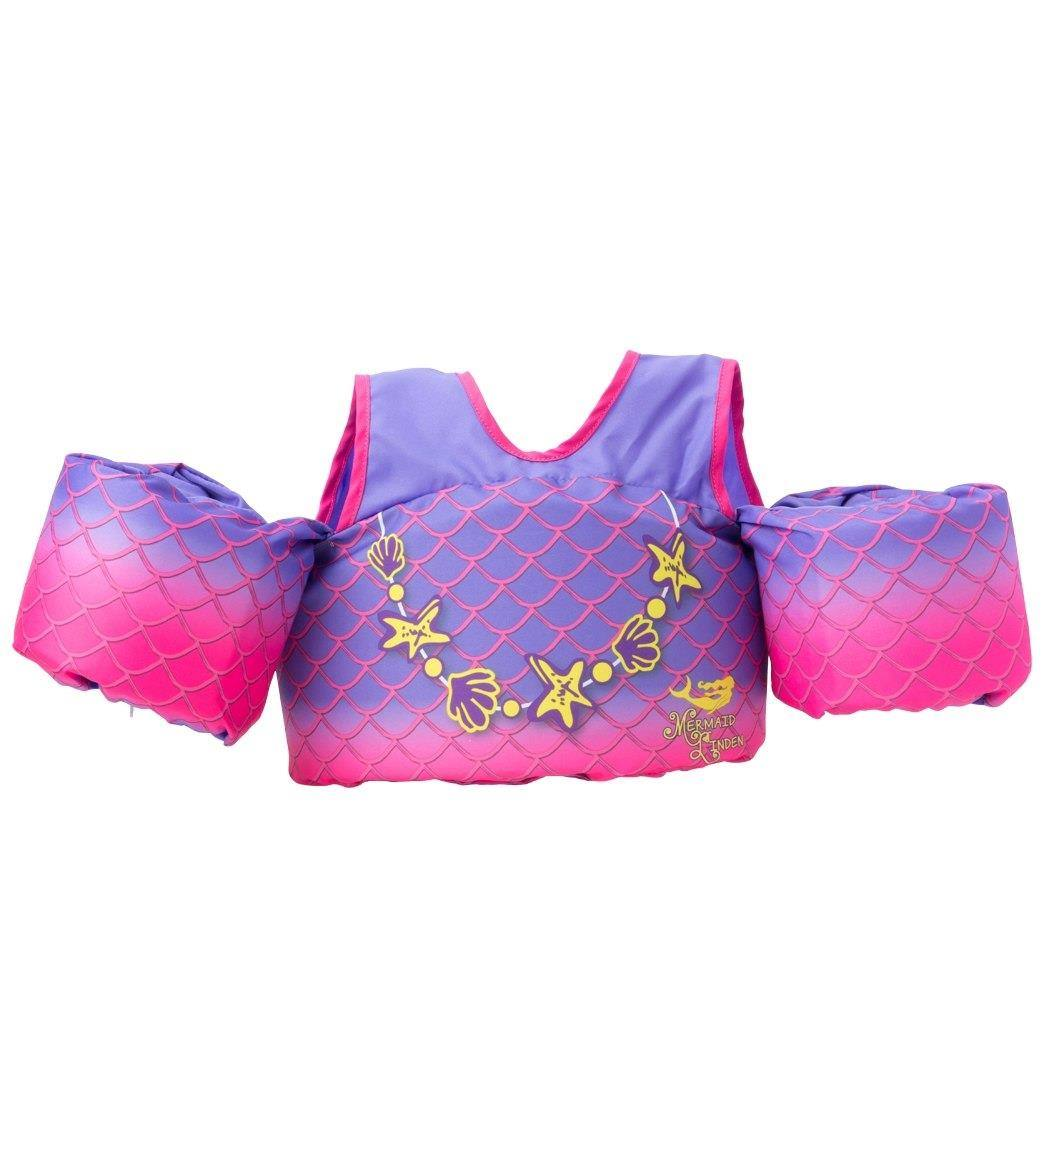 a782159fef1 Paddle Pals Child Swim Vest for sale in Stokesdale, NC | Belew Wake Marine  (336) 548-1900